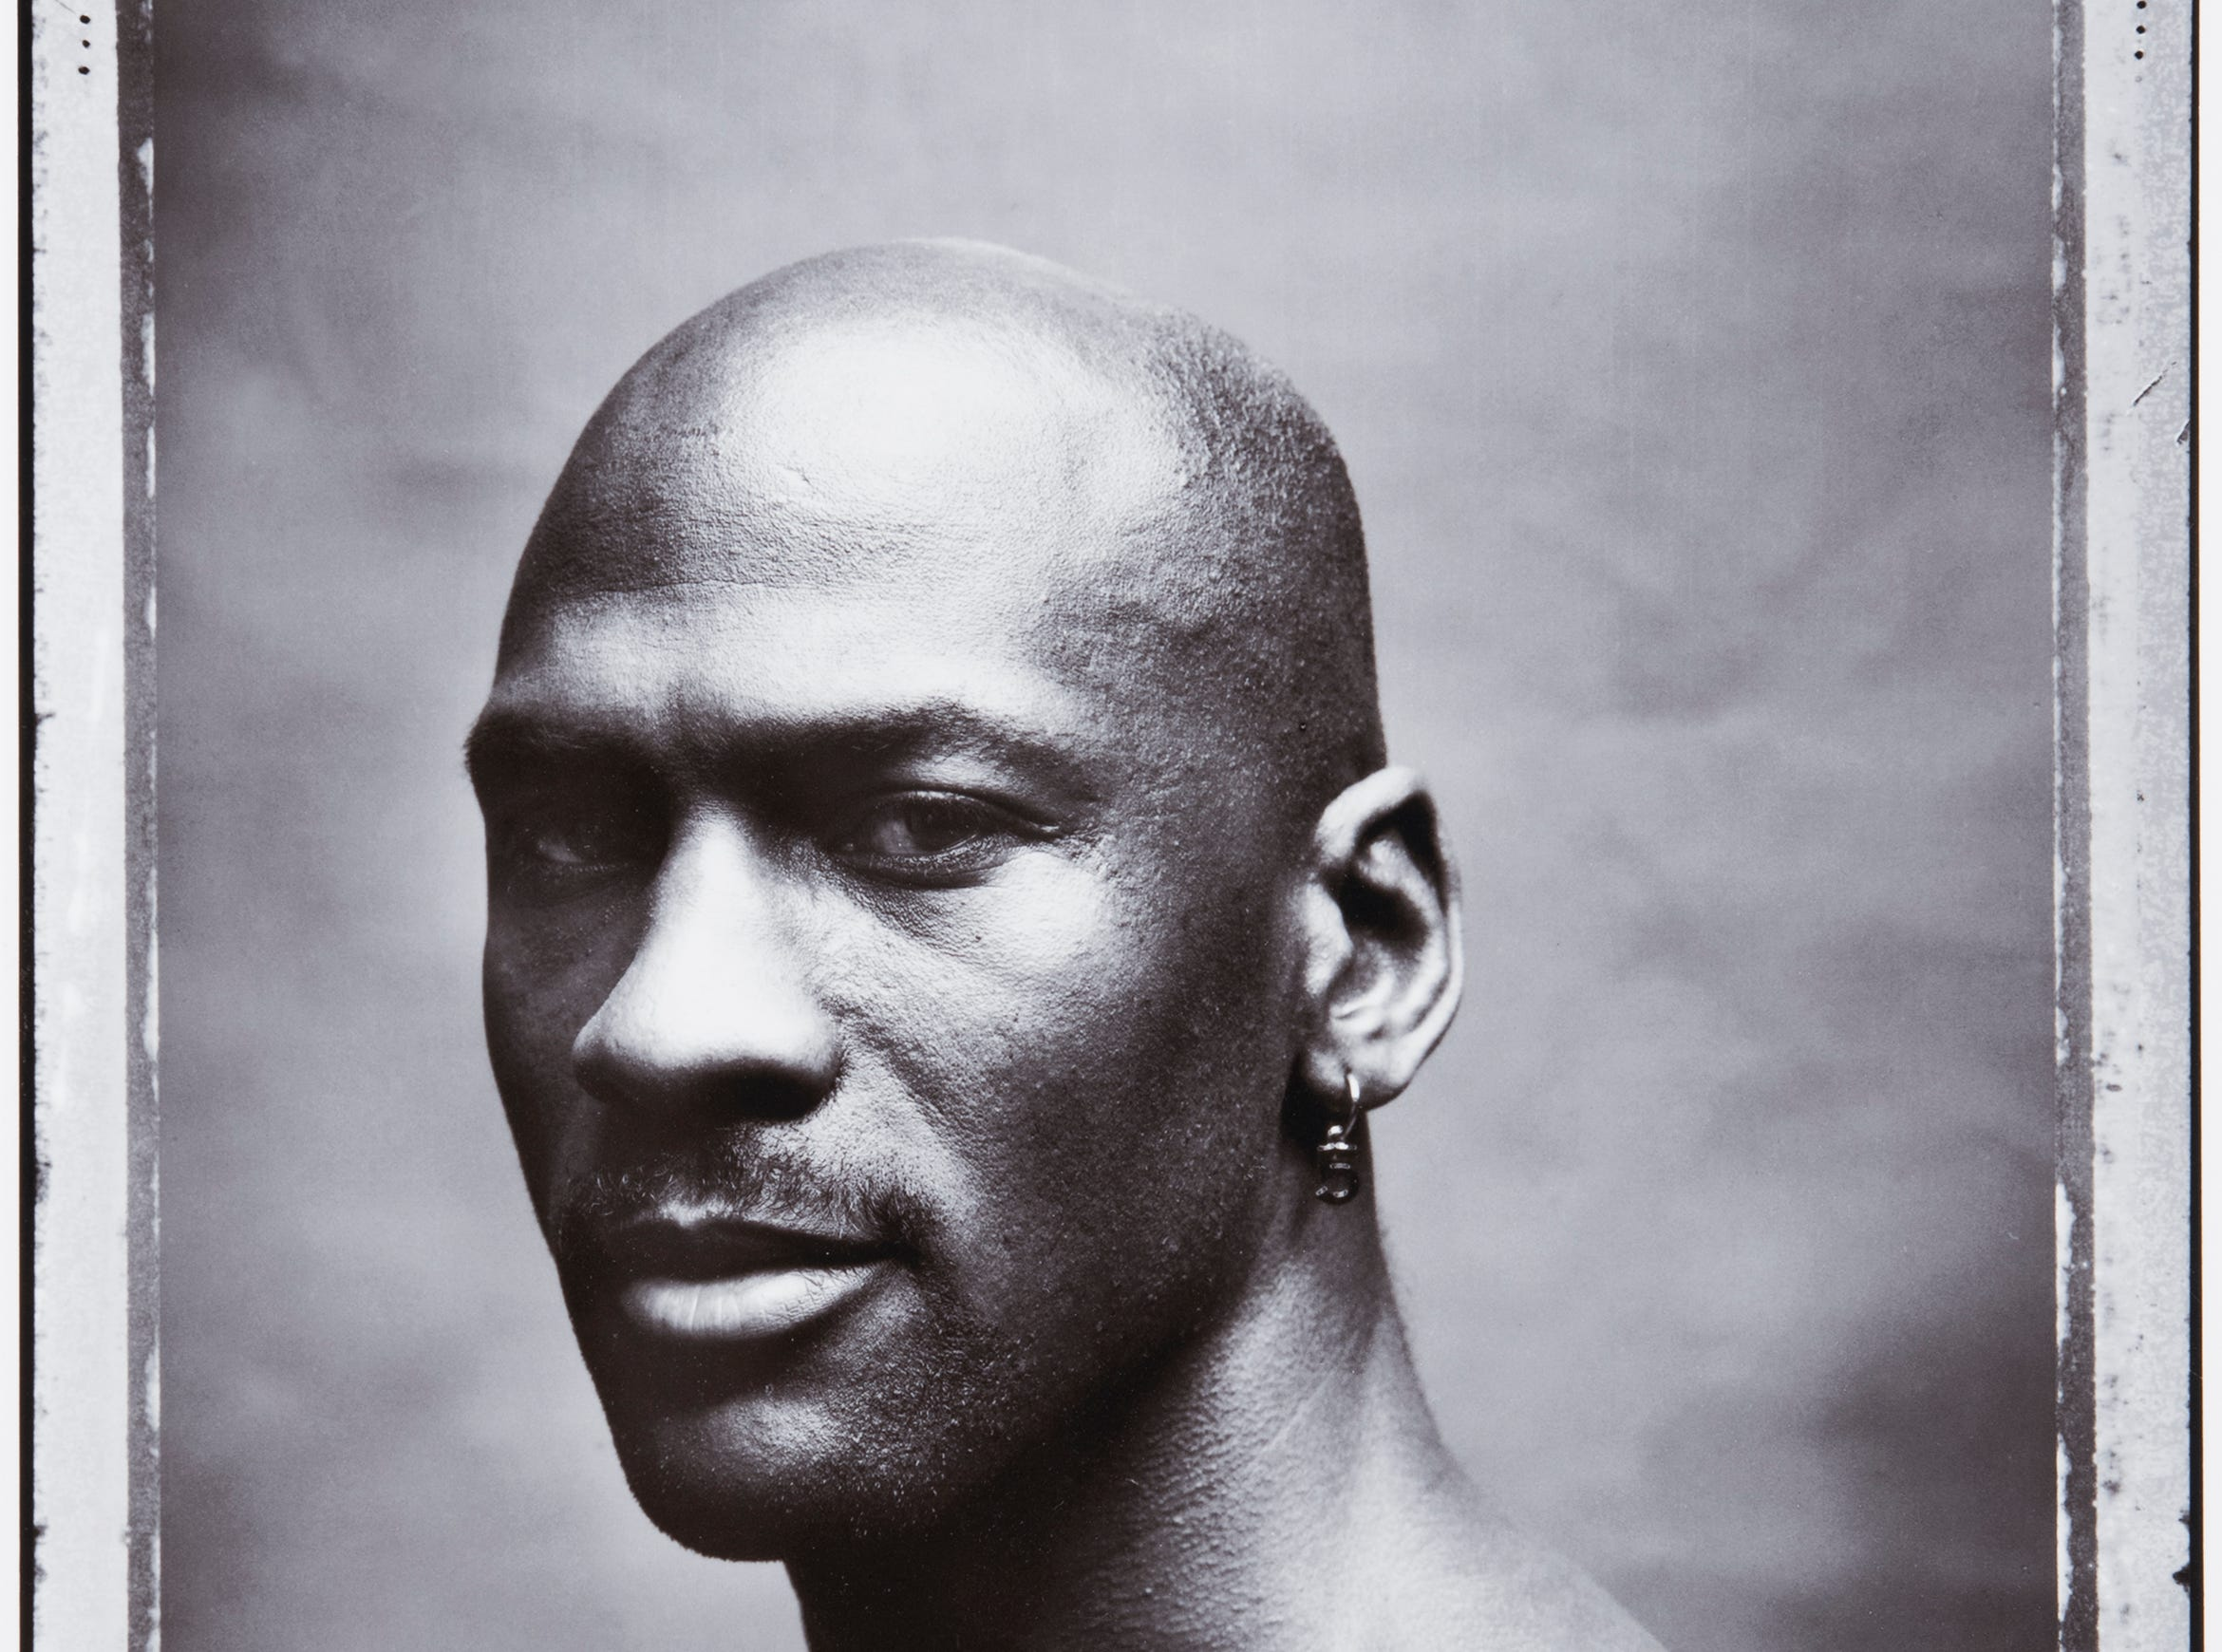 Celebrity Culture: Iooss Walter Iooss  Michael Jordan, Chicago, Ill., 1998  Archival pigment print on paper  Collection Zimmerli Art Museum at Rutgers  Gift of Lev Pukin  Photo Peter Jacobs